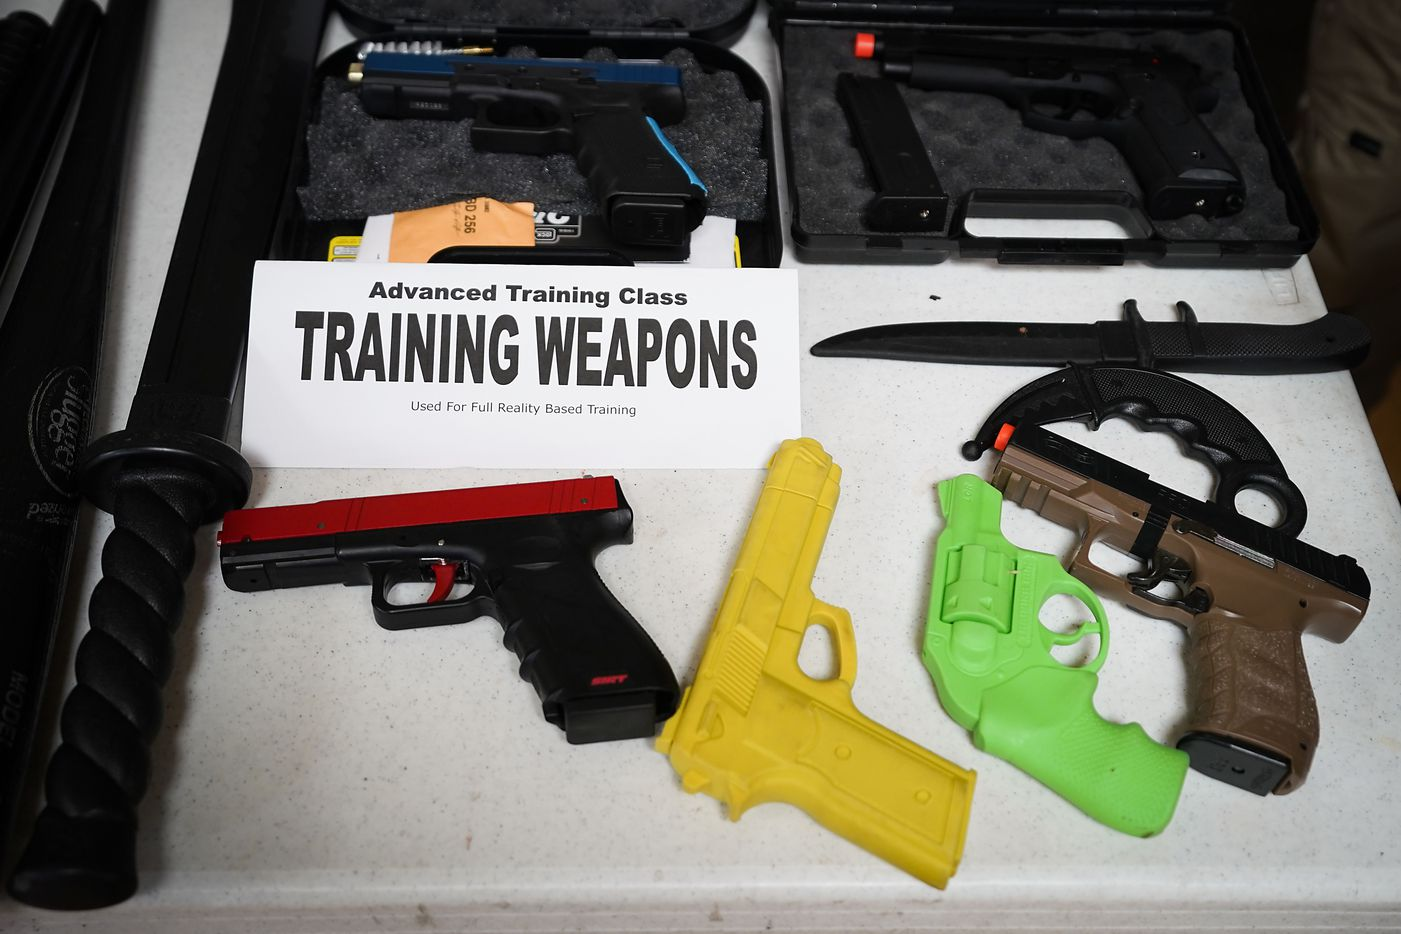 Training weapon displayed by Sentry One Consulting Group at during a  church safety seminar at North Pointe Baptist Church on Sunday, Jan. 26, 2020, in Hurst, Texas.